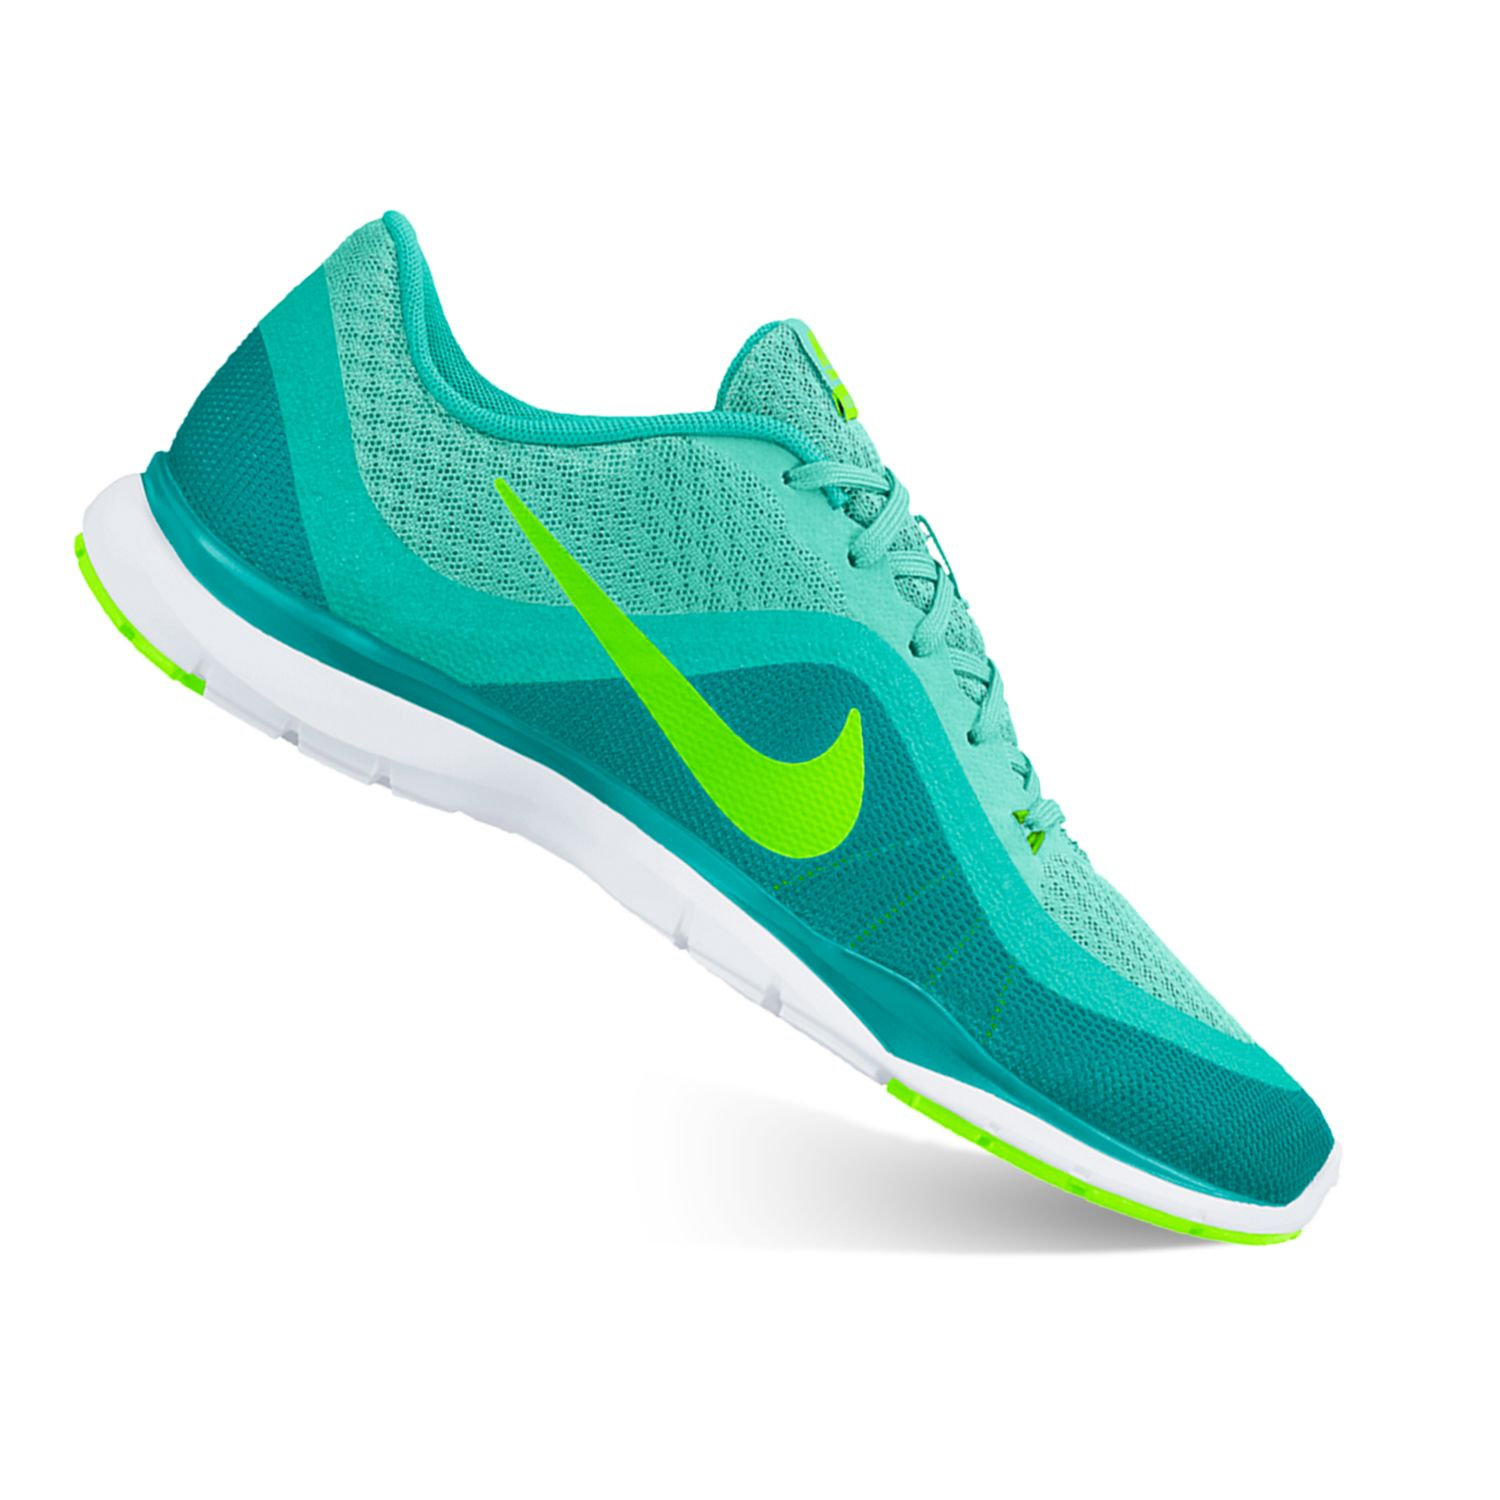 Men's Width Extra Wide Athletic Shoes | FamousFootwear.com